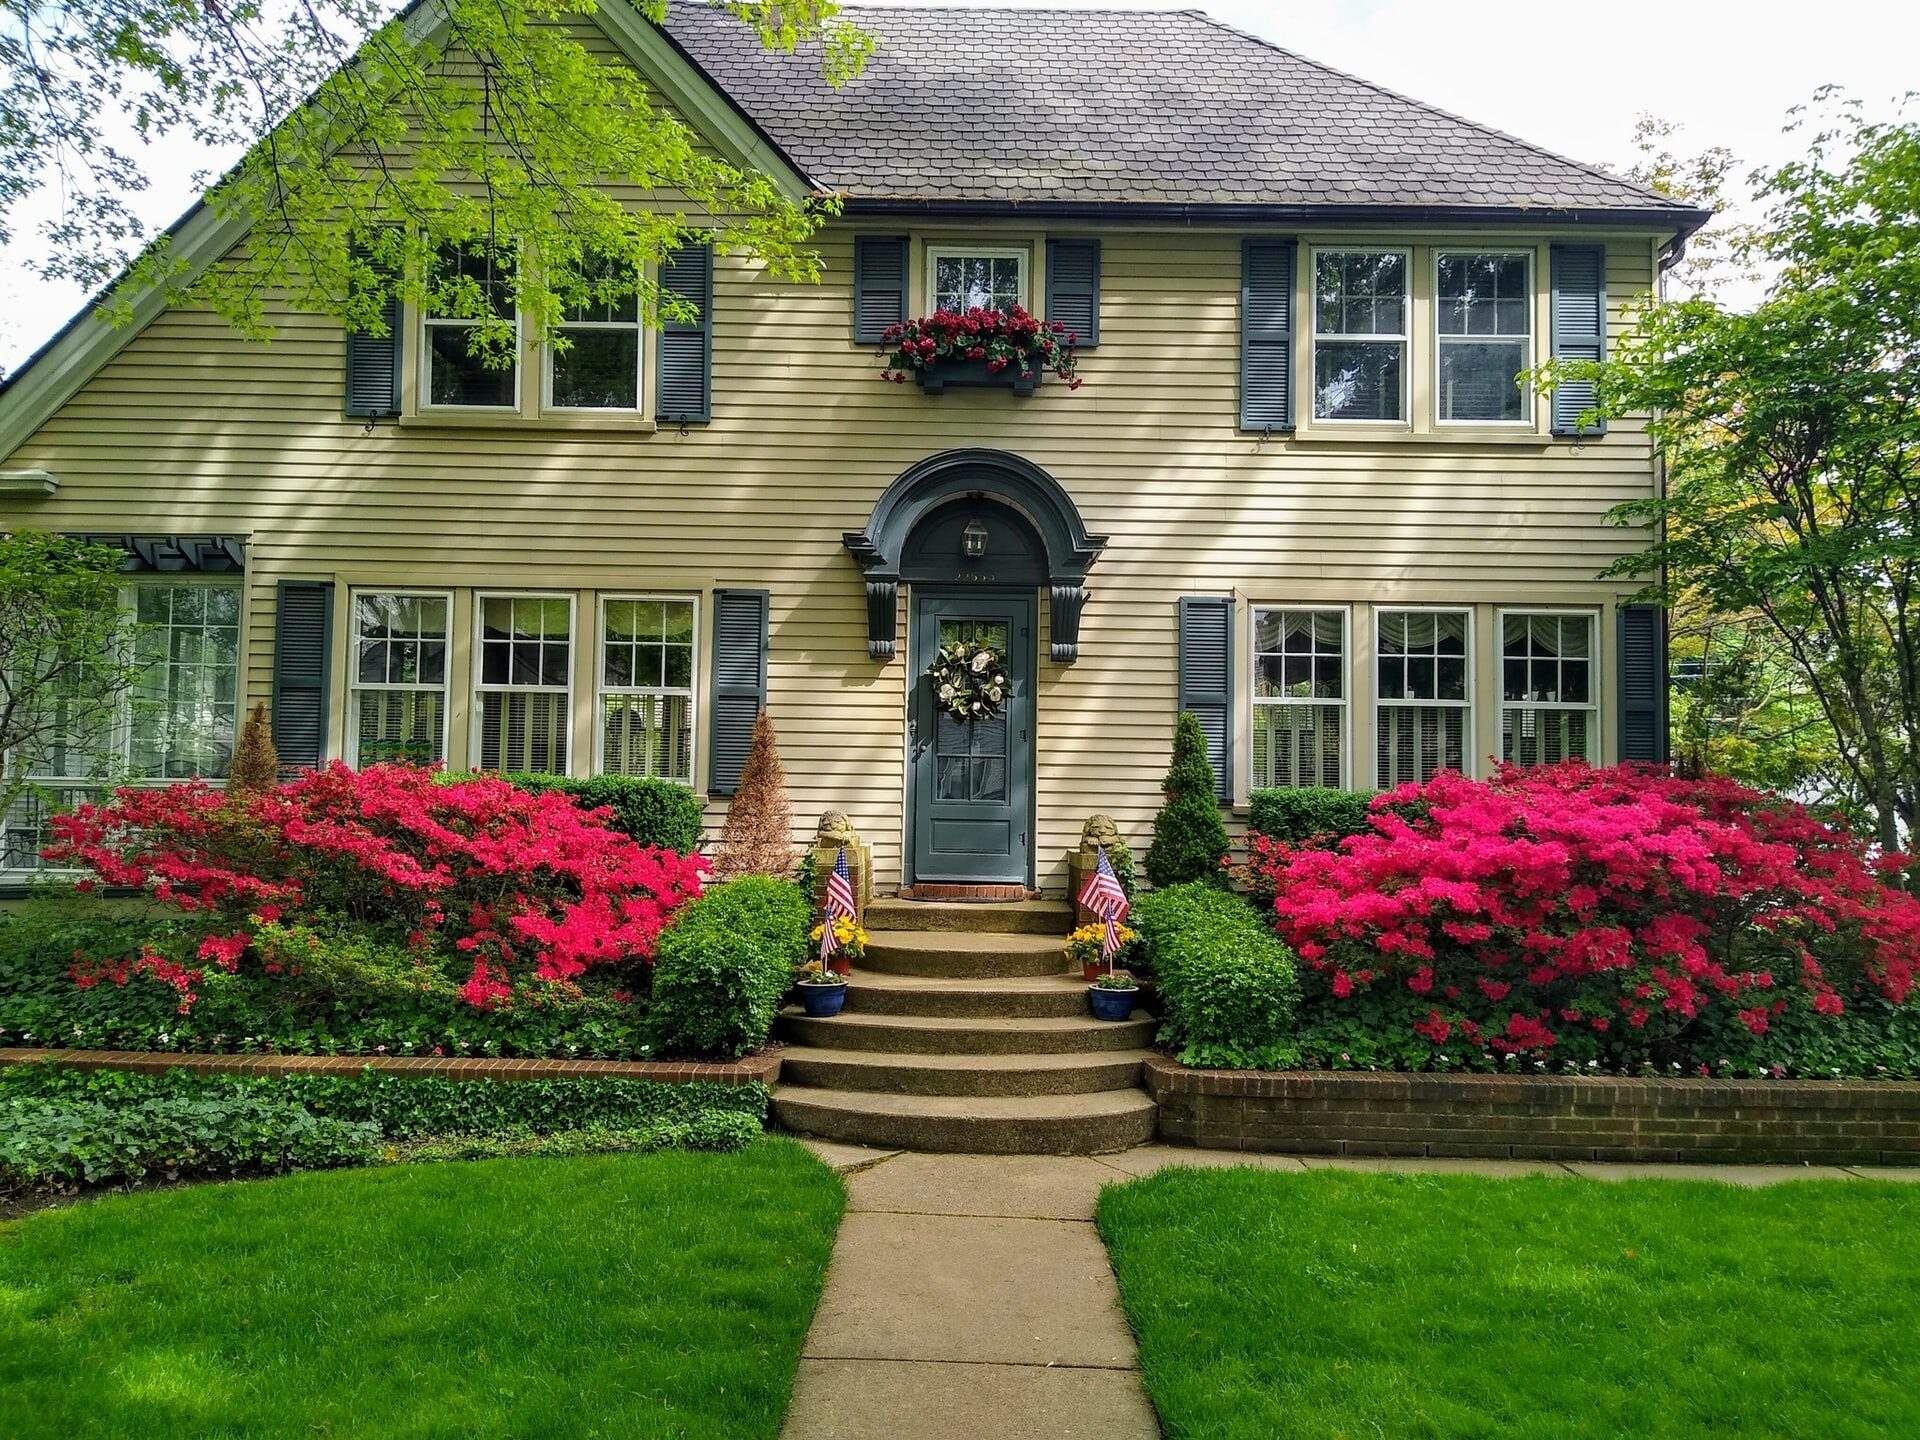 Landscaping: How to Get Your Lawn Ready for Spring